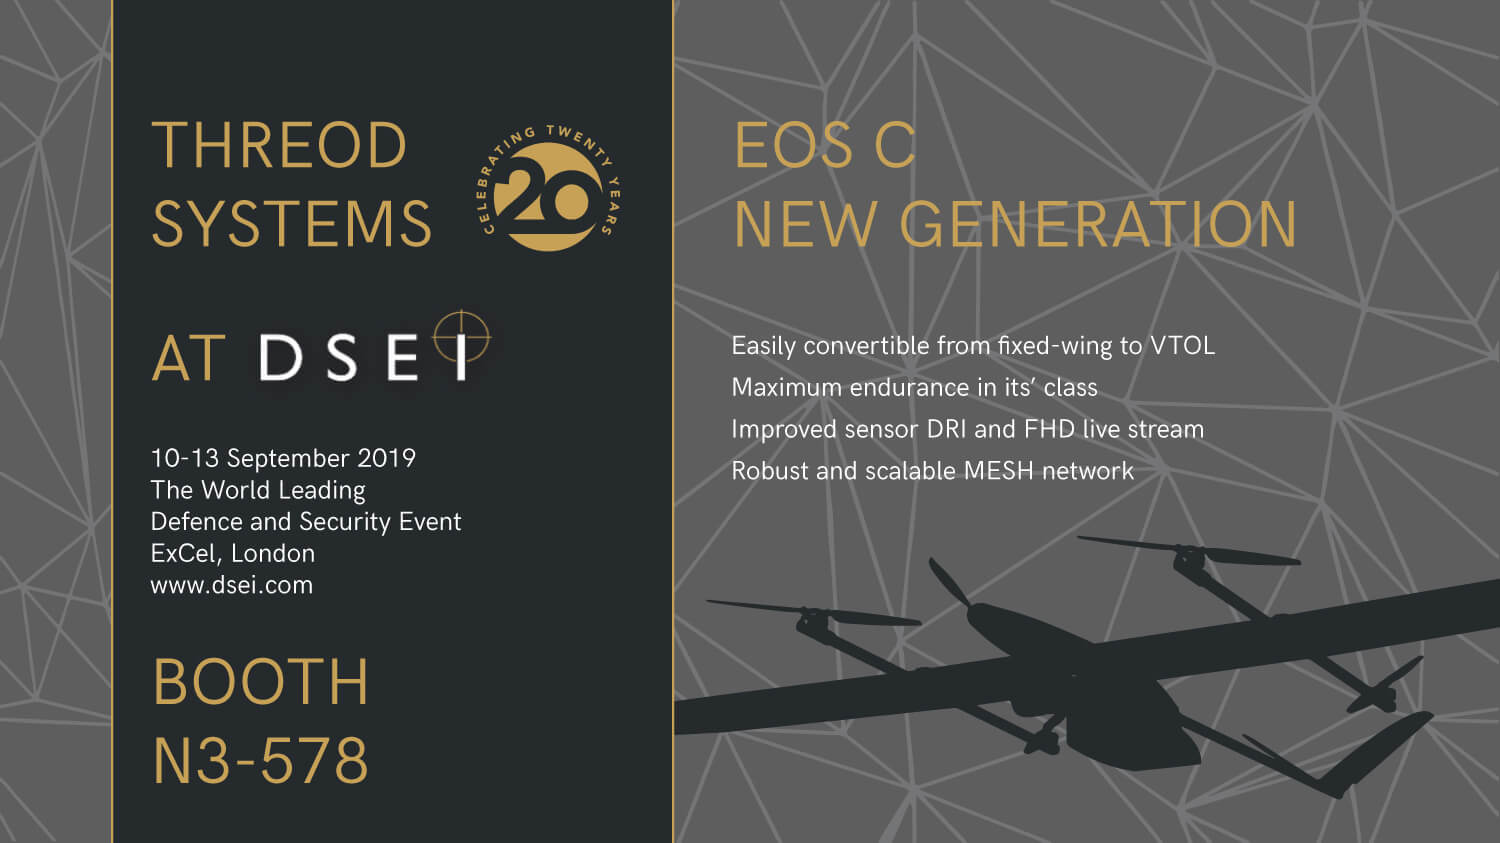 Eos C VTOL fixed-wing UAV at DSEI 2019